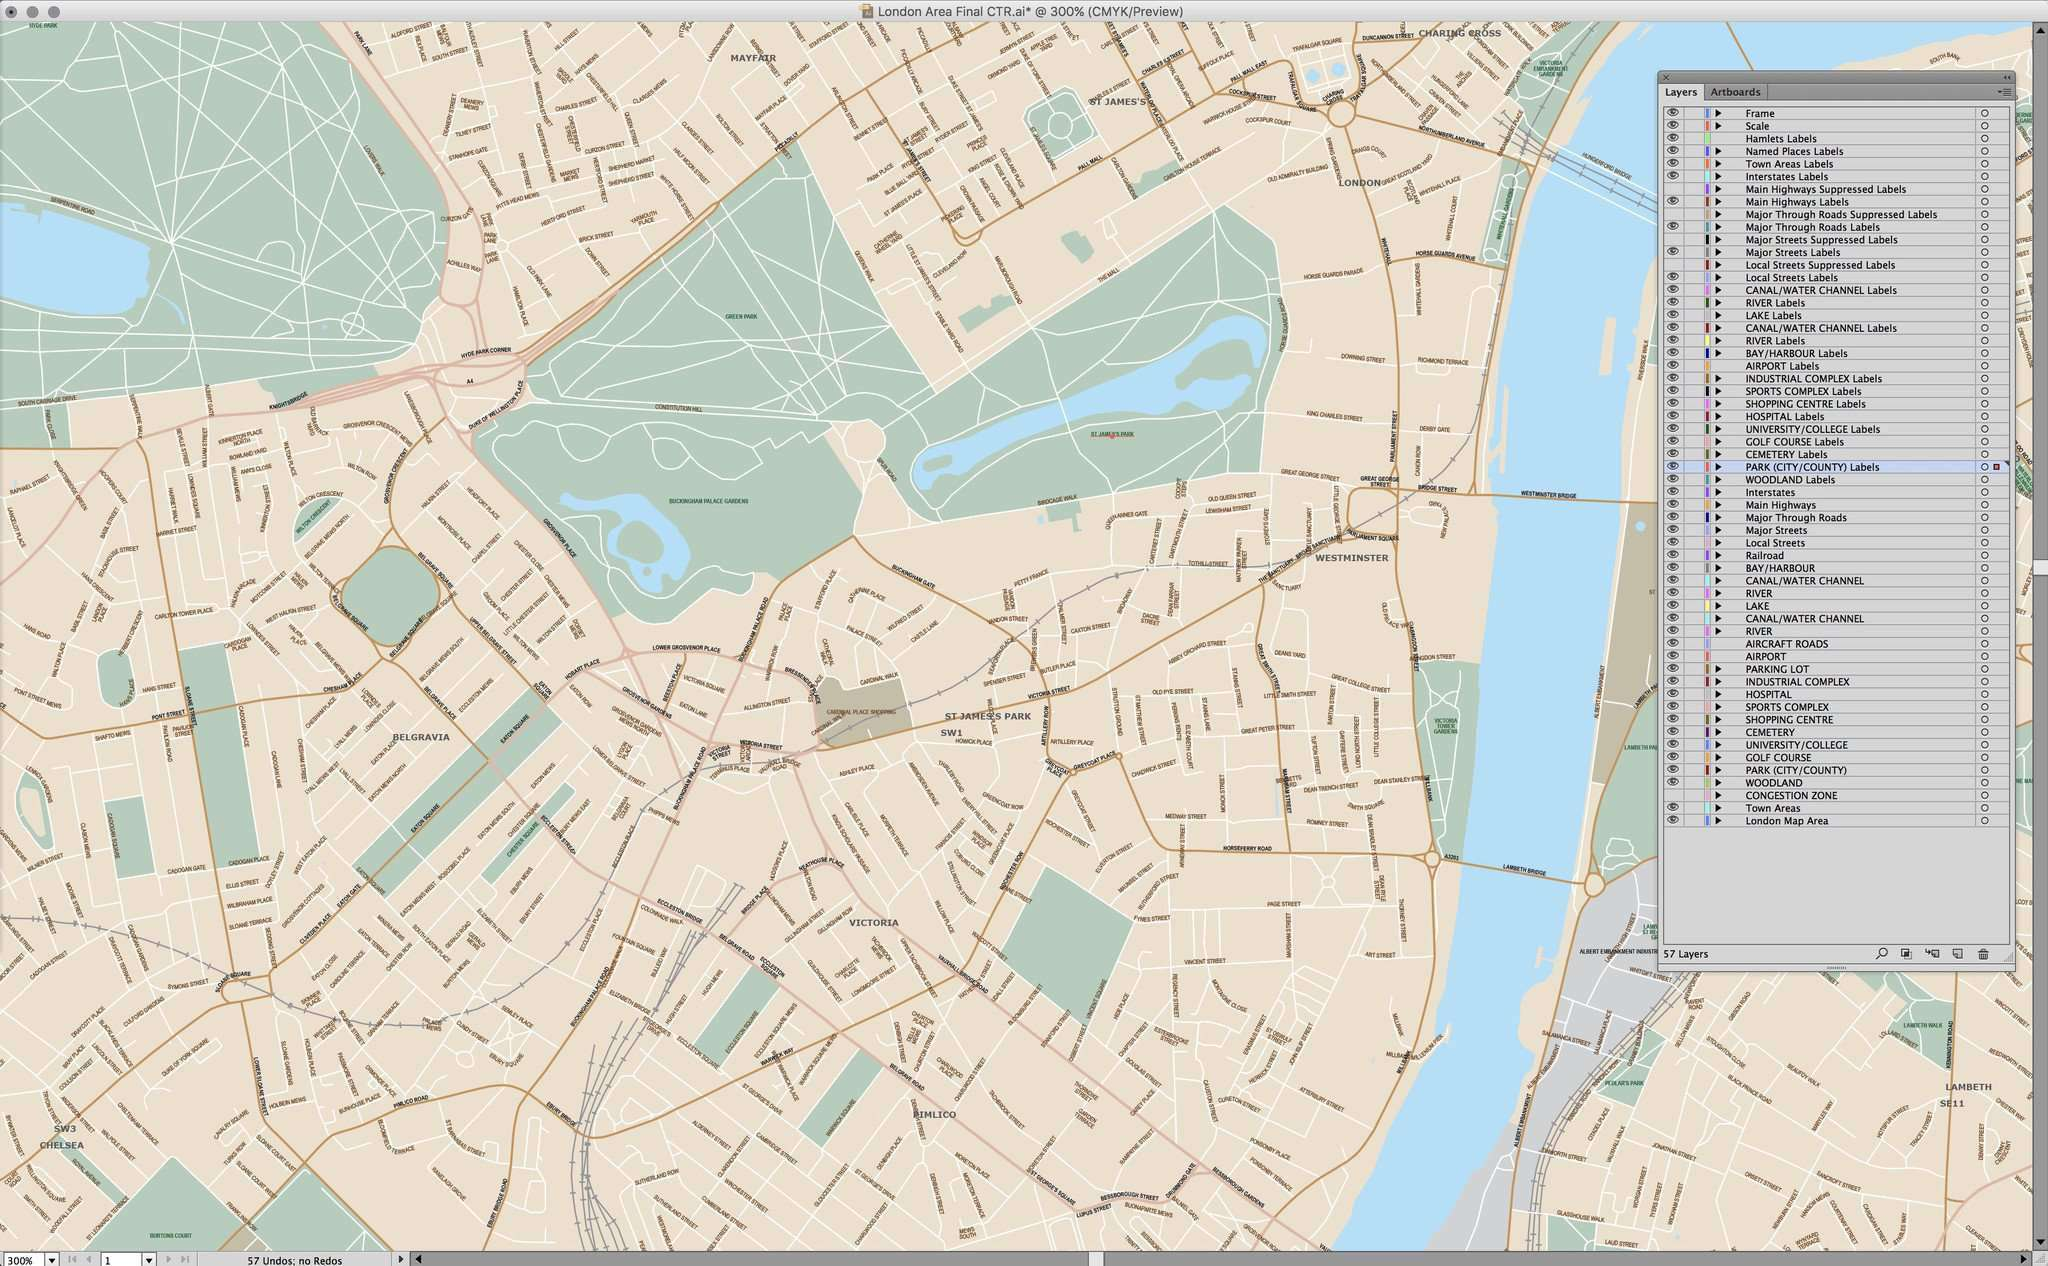 London England Local Street Map In Adobe Illustrator Vector Format